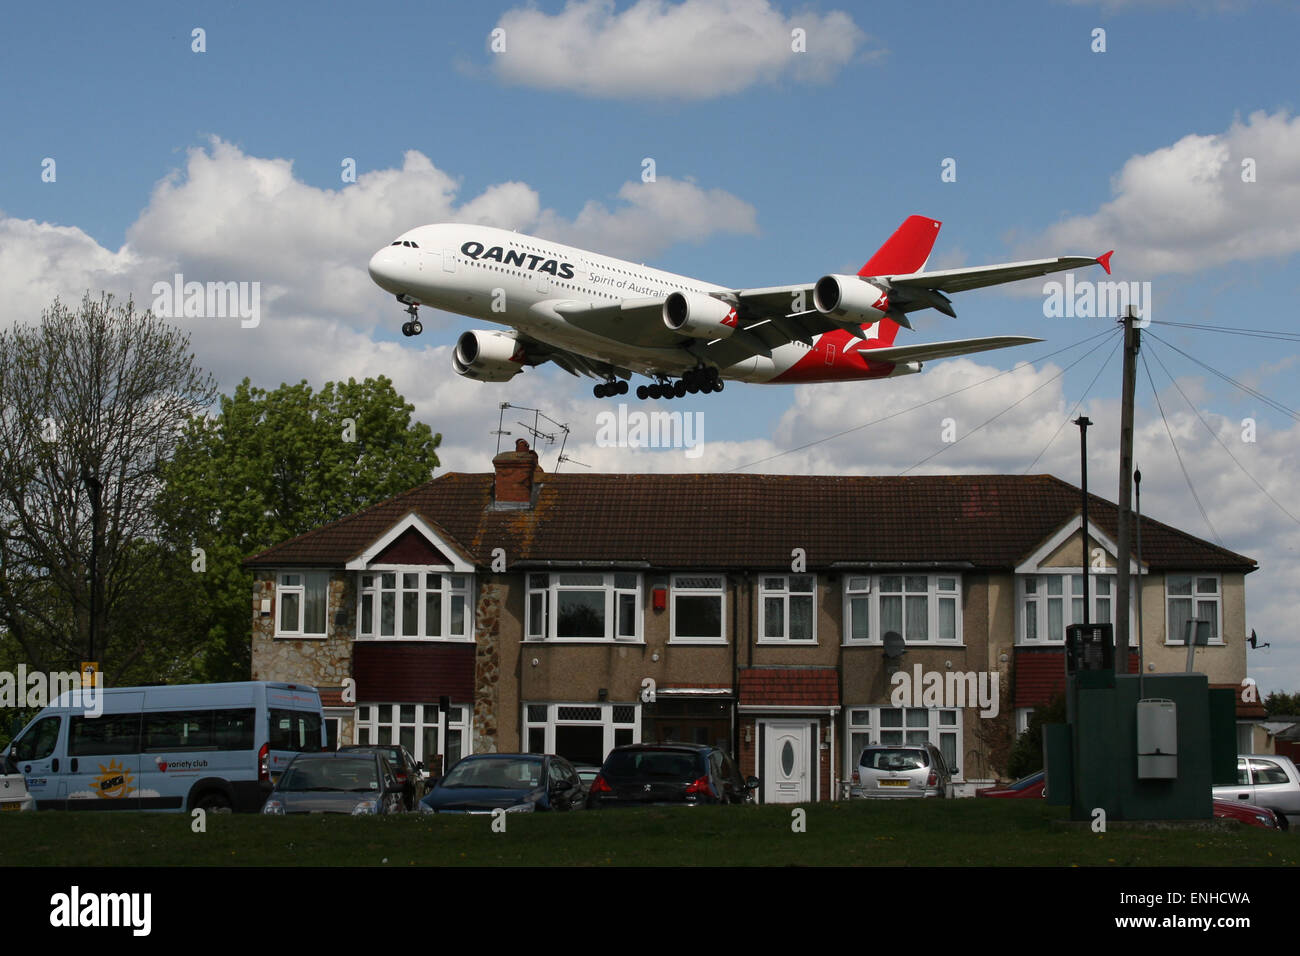 House Plane Heathrow Noise Runway Airport Expansion Stock Photo